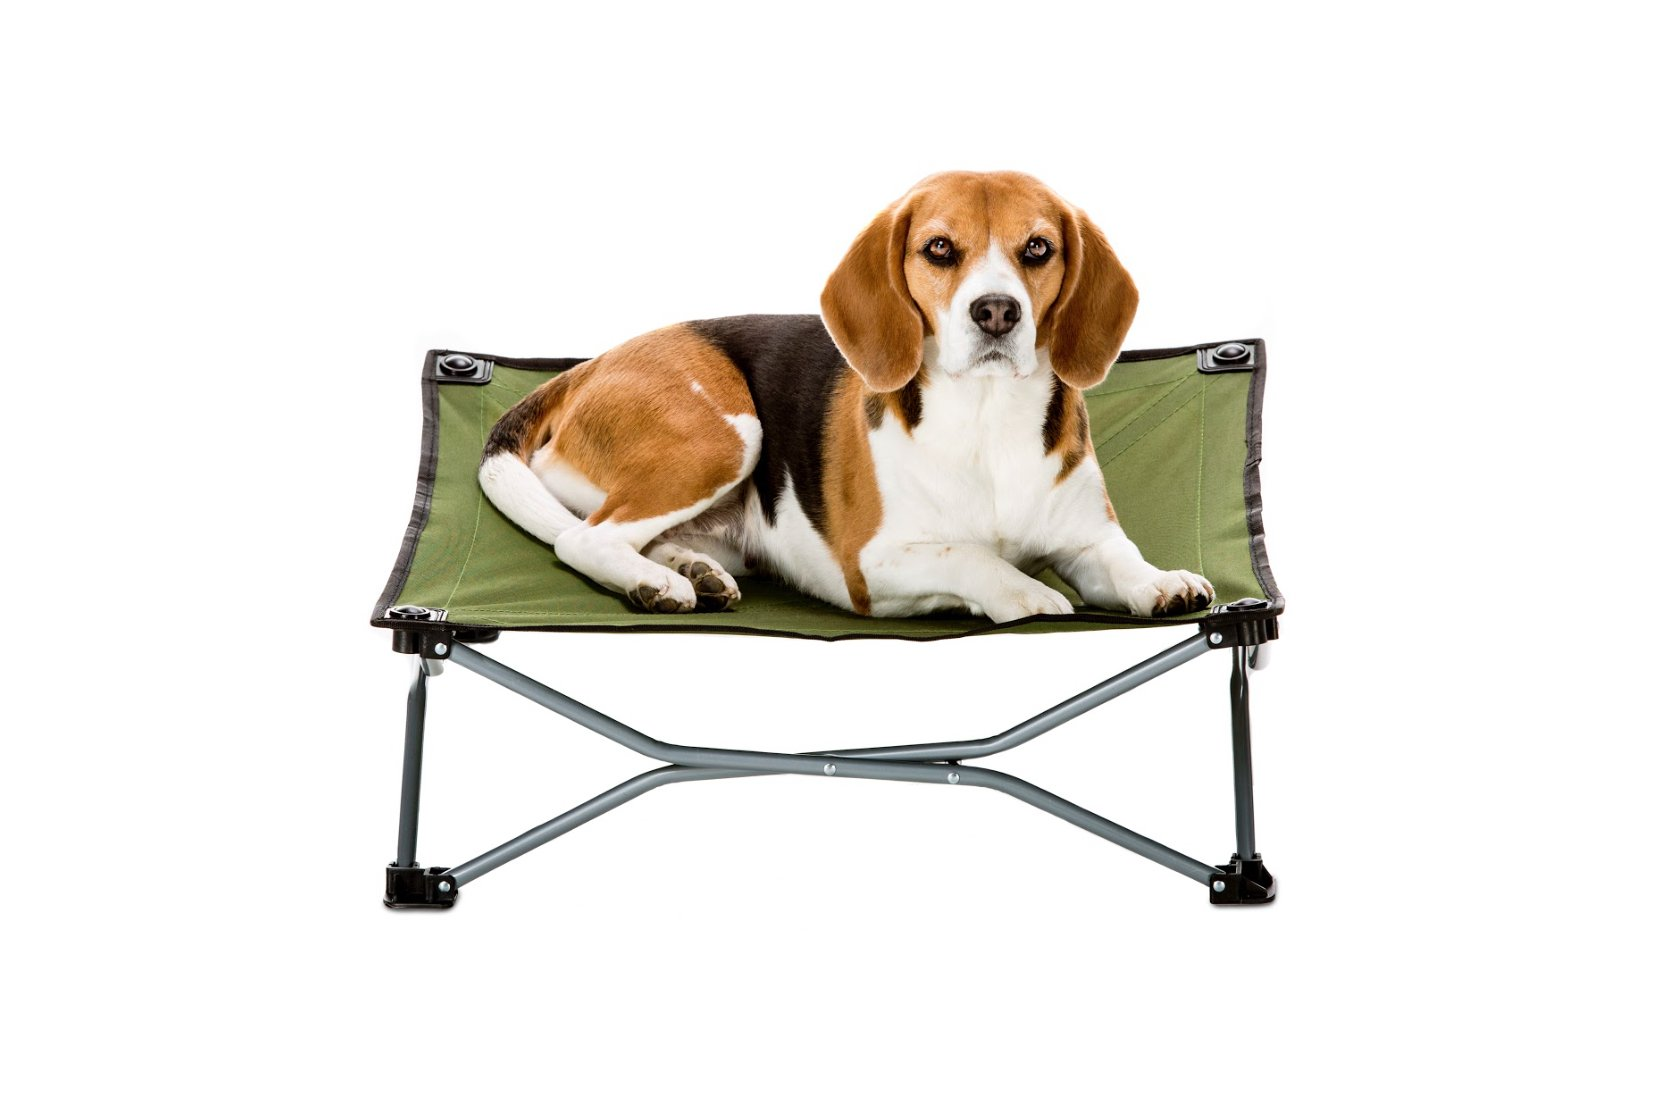 Carlson Pet Products 8040 Elevated Folding Pet Bed 26'' Long, Includes Travel Case, Green